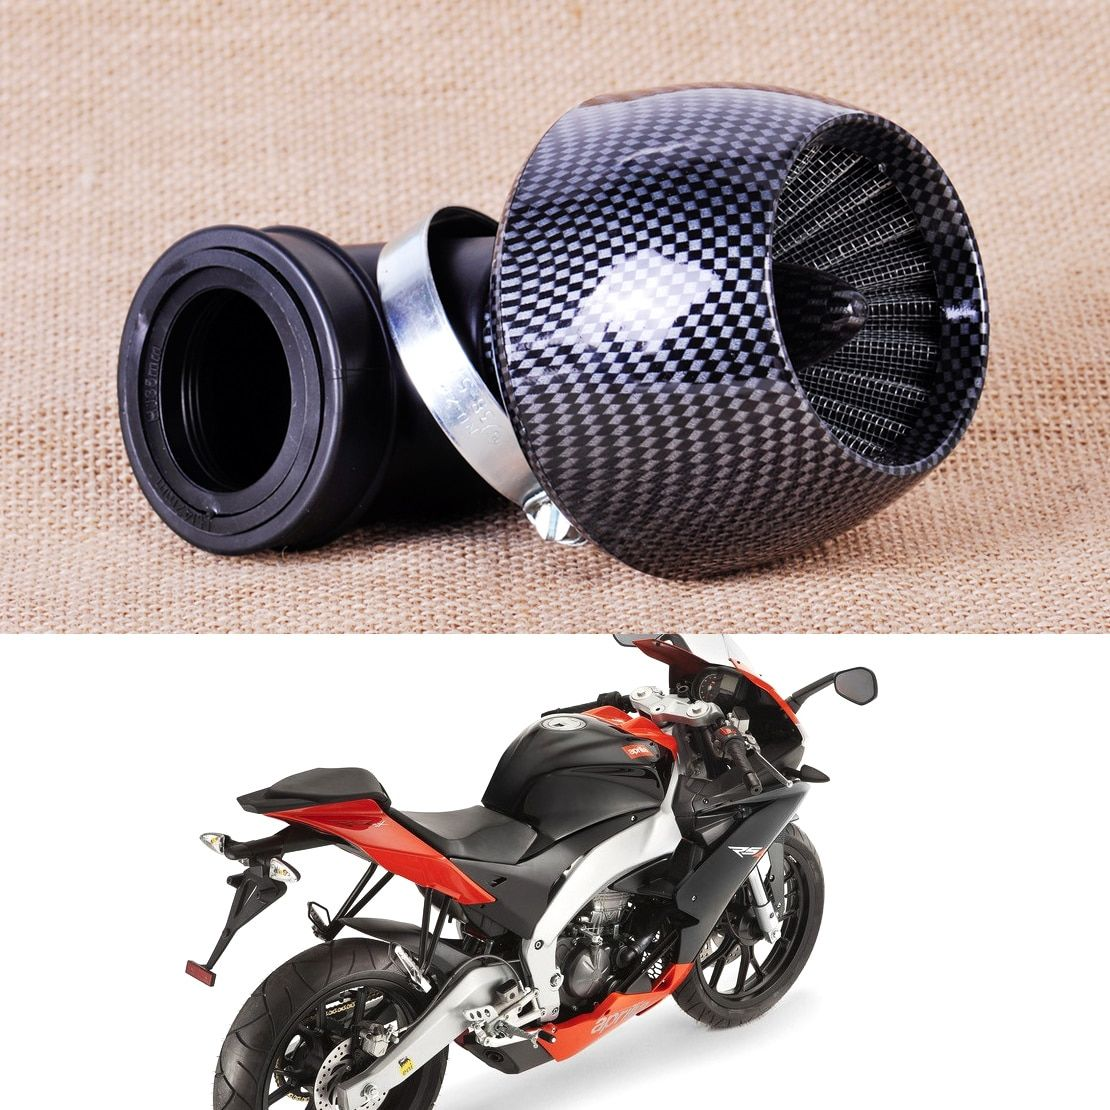 CITALL 35/42/48mm Air Filter fit for 150cc & 250cc Scooter Moped Dirt Bikes ATV Quad Go kart Pit Bike